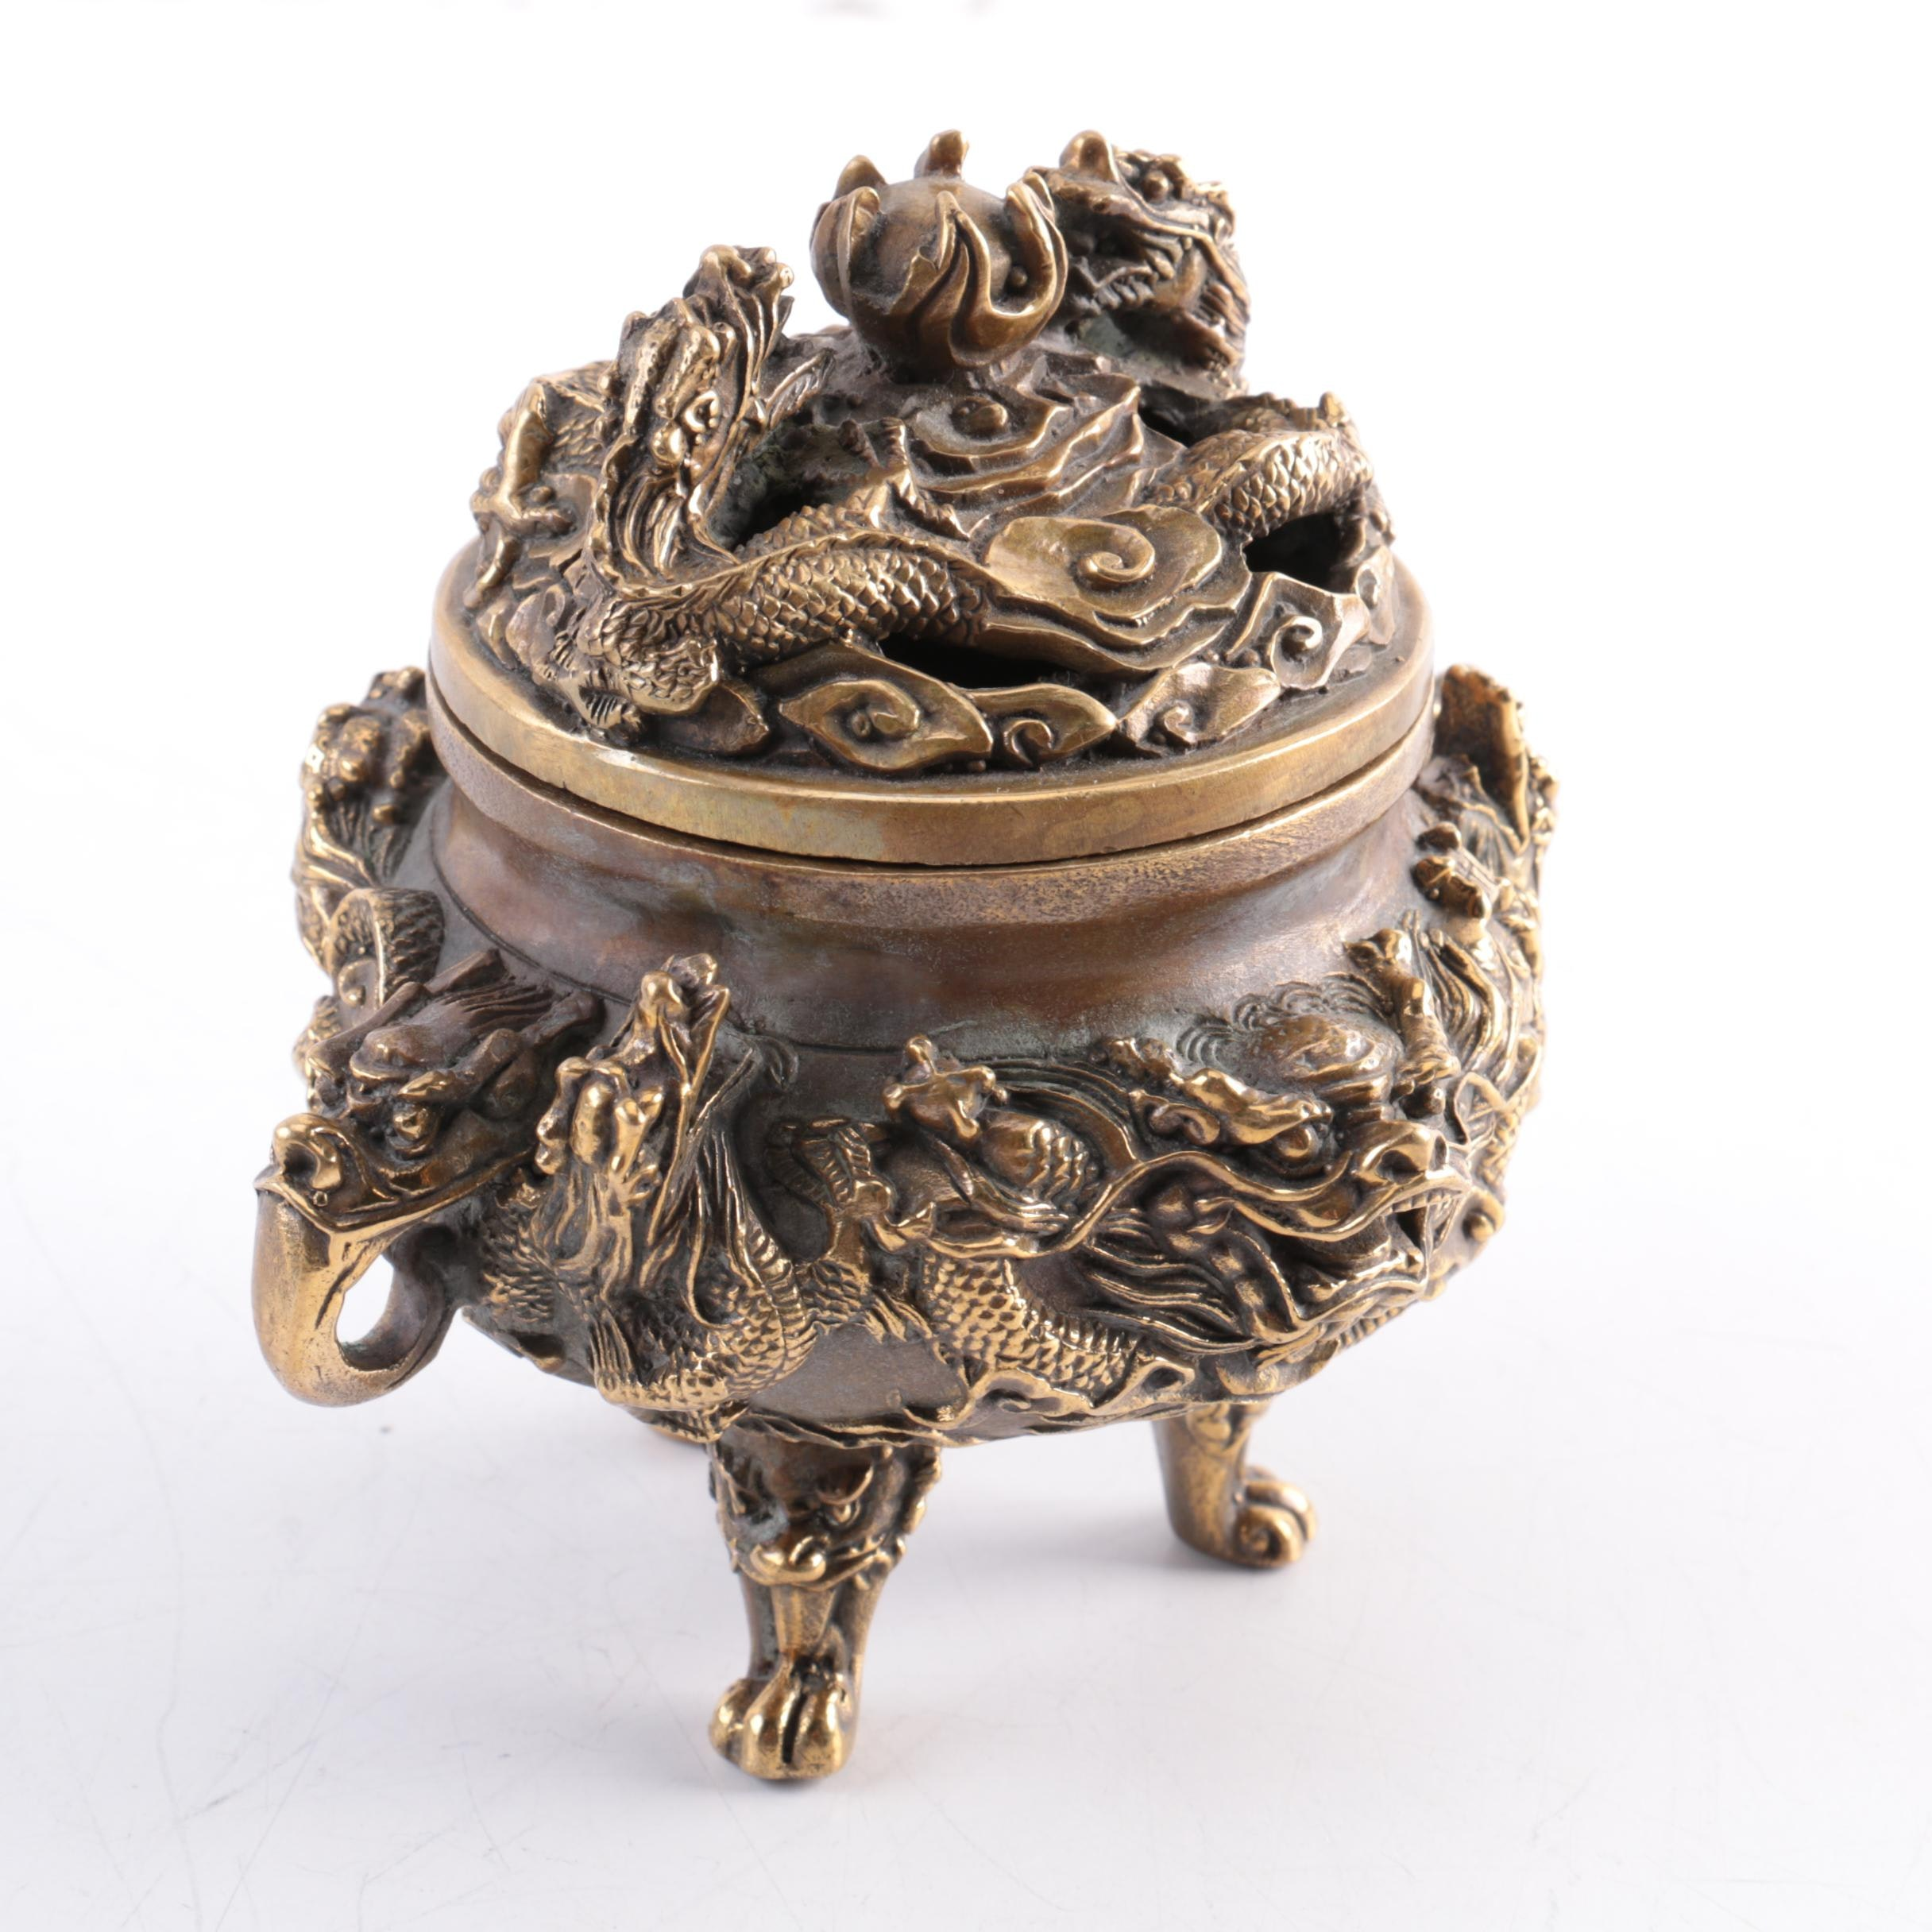 Vintage Chinese Bronze Censer Depicting Dragons Chasing The Flaming Pearl